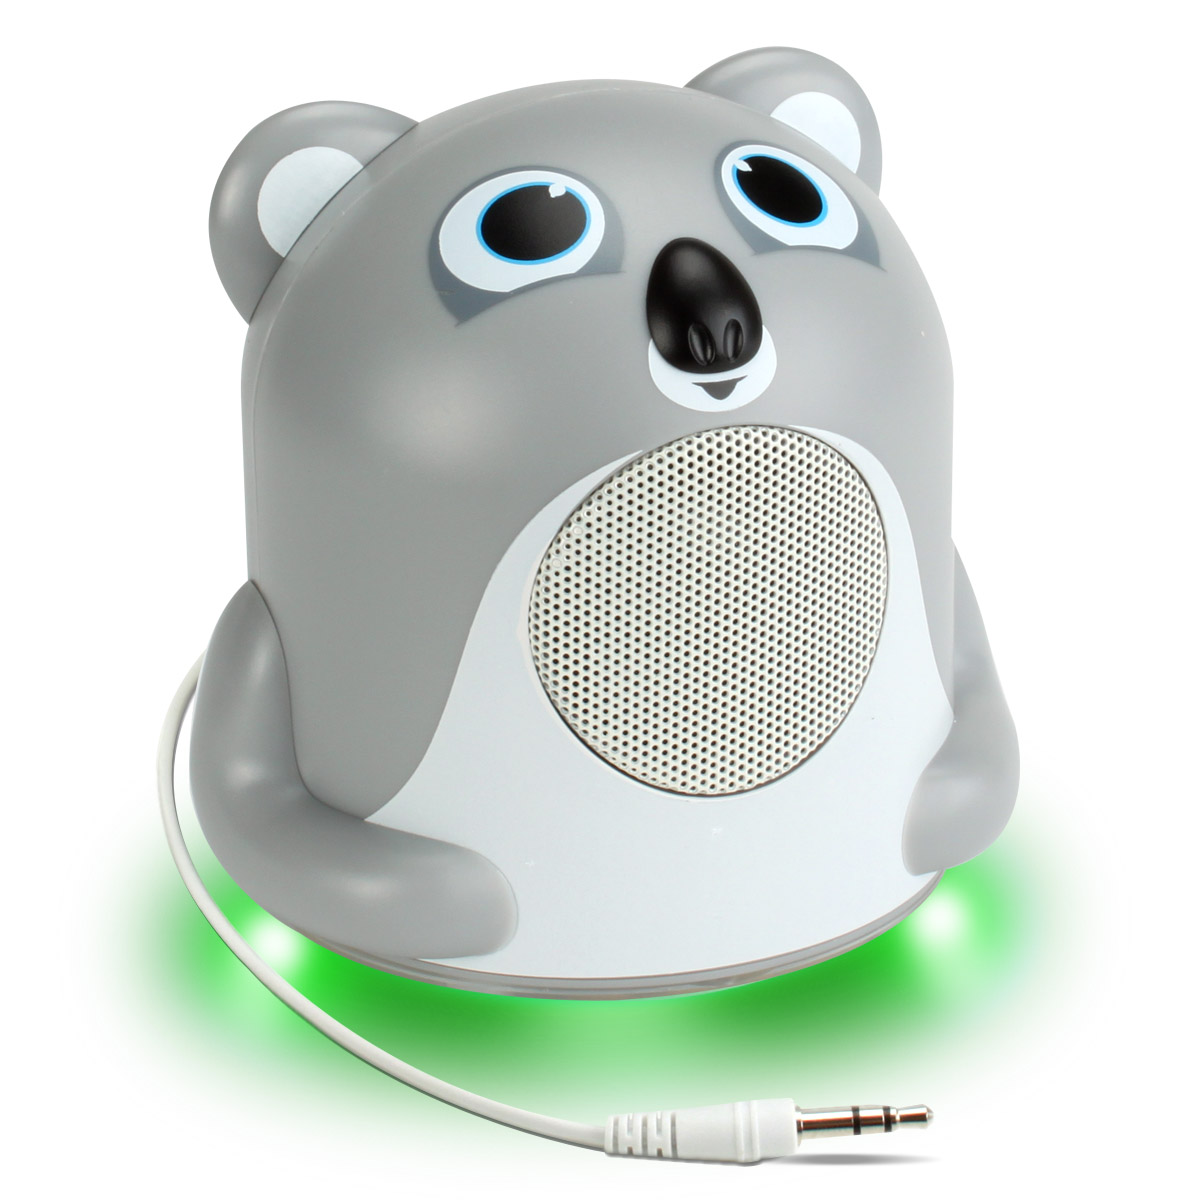 GOgroove Koala Bedside Speaker with LED Glow , Cute Animal Design & 3.5mm Cable to Connect to Phones Works with Apple , Samsung , LG & More